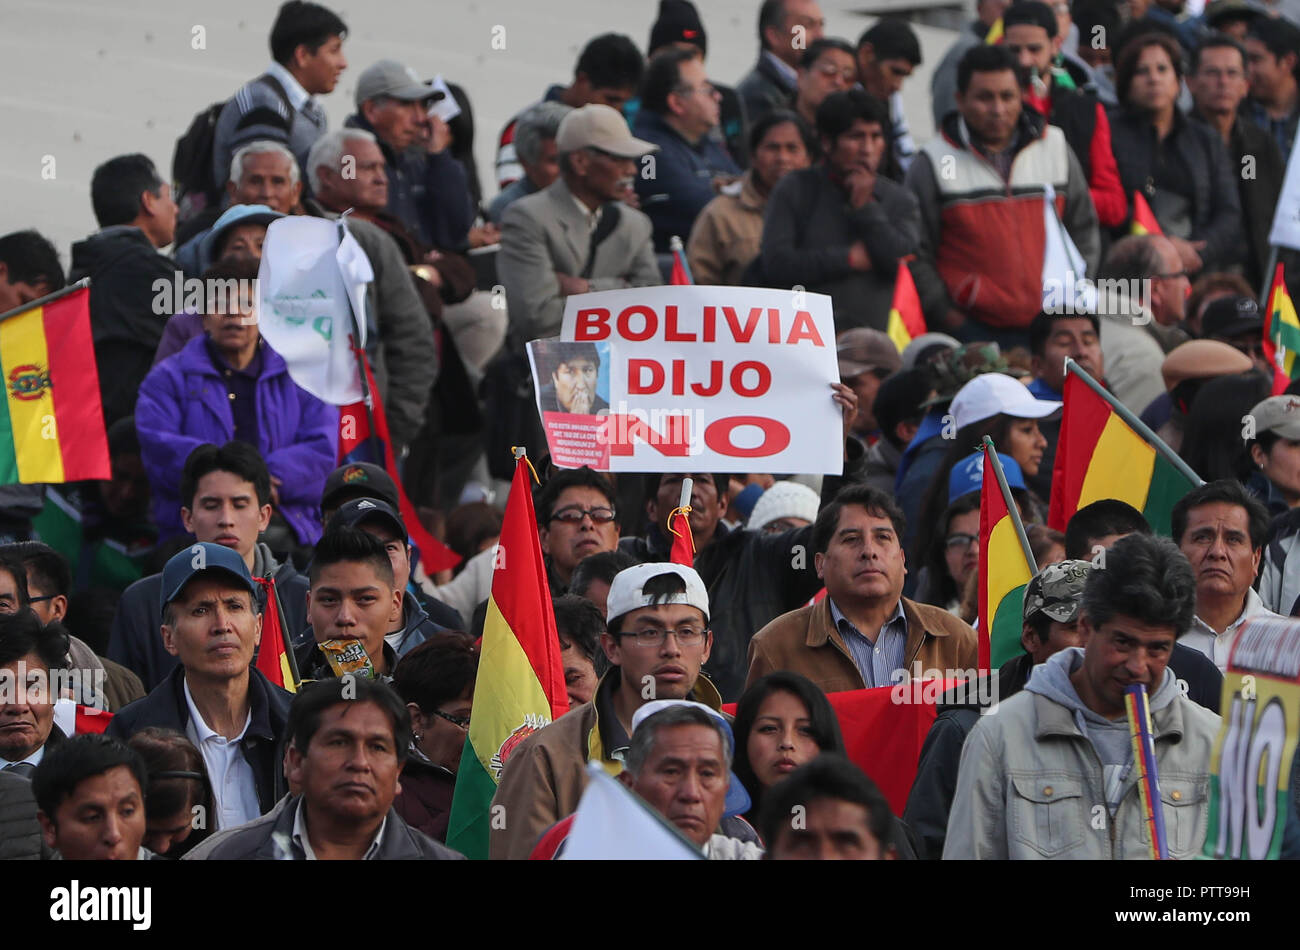 La Paz, Bolivia. 10th Oct, 2018. Thousands of people march against the President of Bolivia Evo Morales, in La Paz, Bolivia, 10 October 2018. Thousands of detractors of President Evo marched today in the main cities of the country to demand that the results of a referendum be respected, which denied the president the possibility of returning to run in 2019, after remembering the 36 continuous years of democracy in the country. Credit: Martin Alipaz/EFE/Alamy Live News - Stock Image